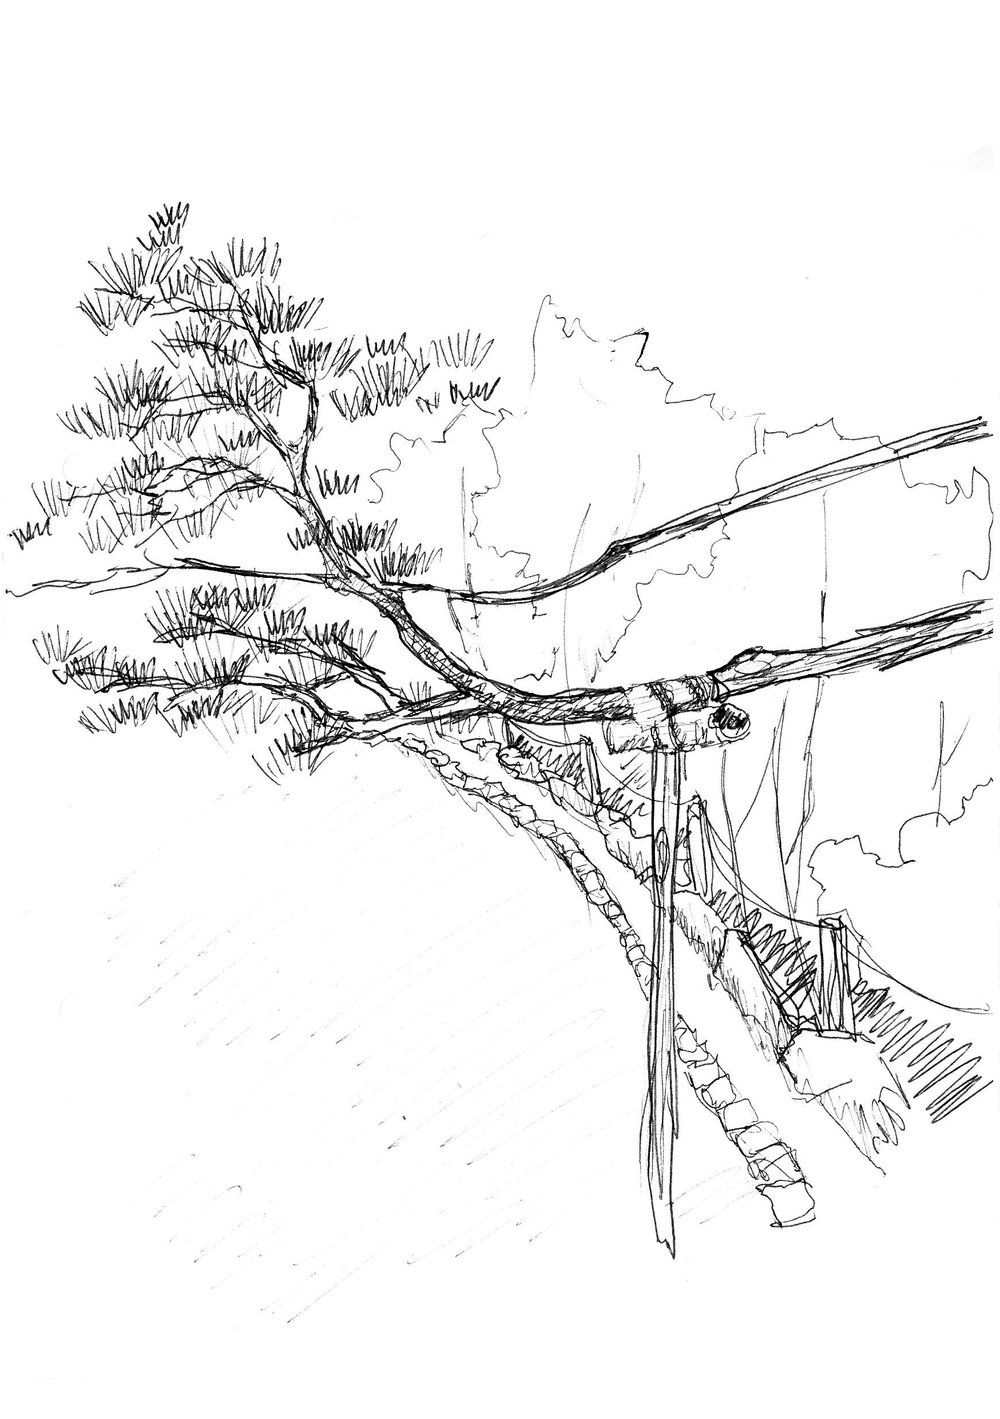 OBSERVATION SITE: Roan-ji龍安寺 - Pictured left: The branch of a pine tree reaches out to meet the path – the branch has been carefully protected and supported and takes up quite a lot of path space. The support material blends into the environment both in colour and structure.